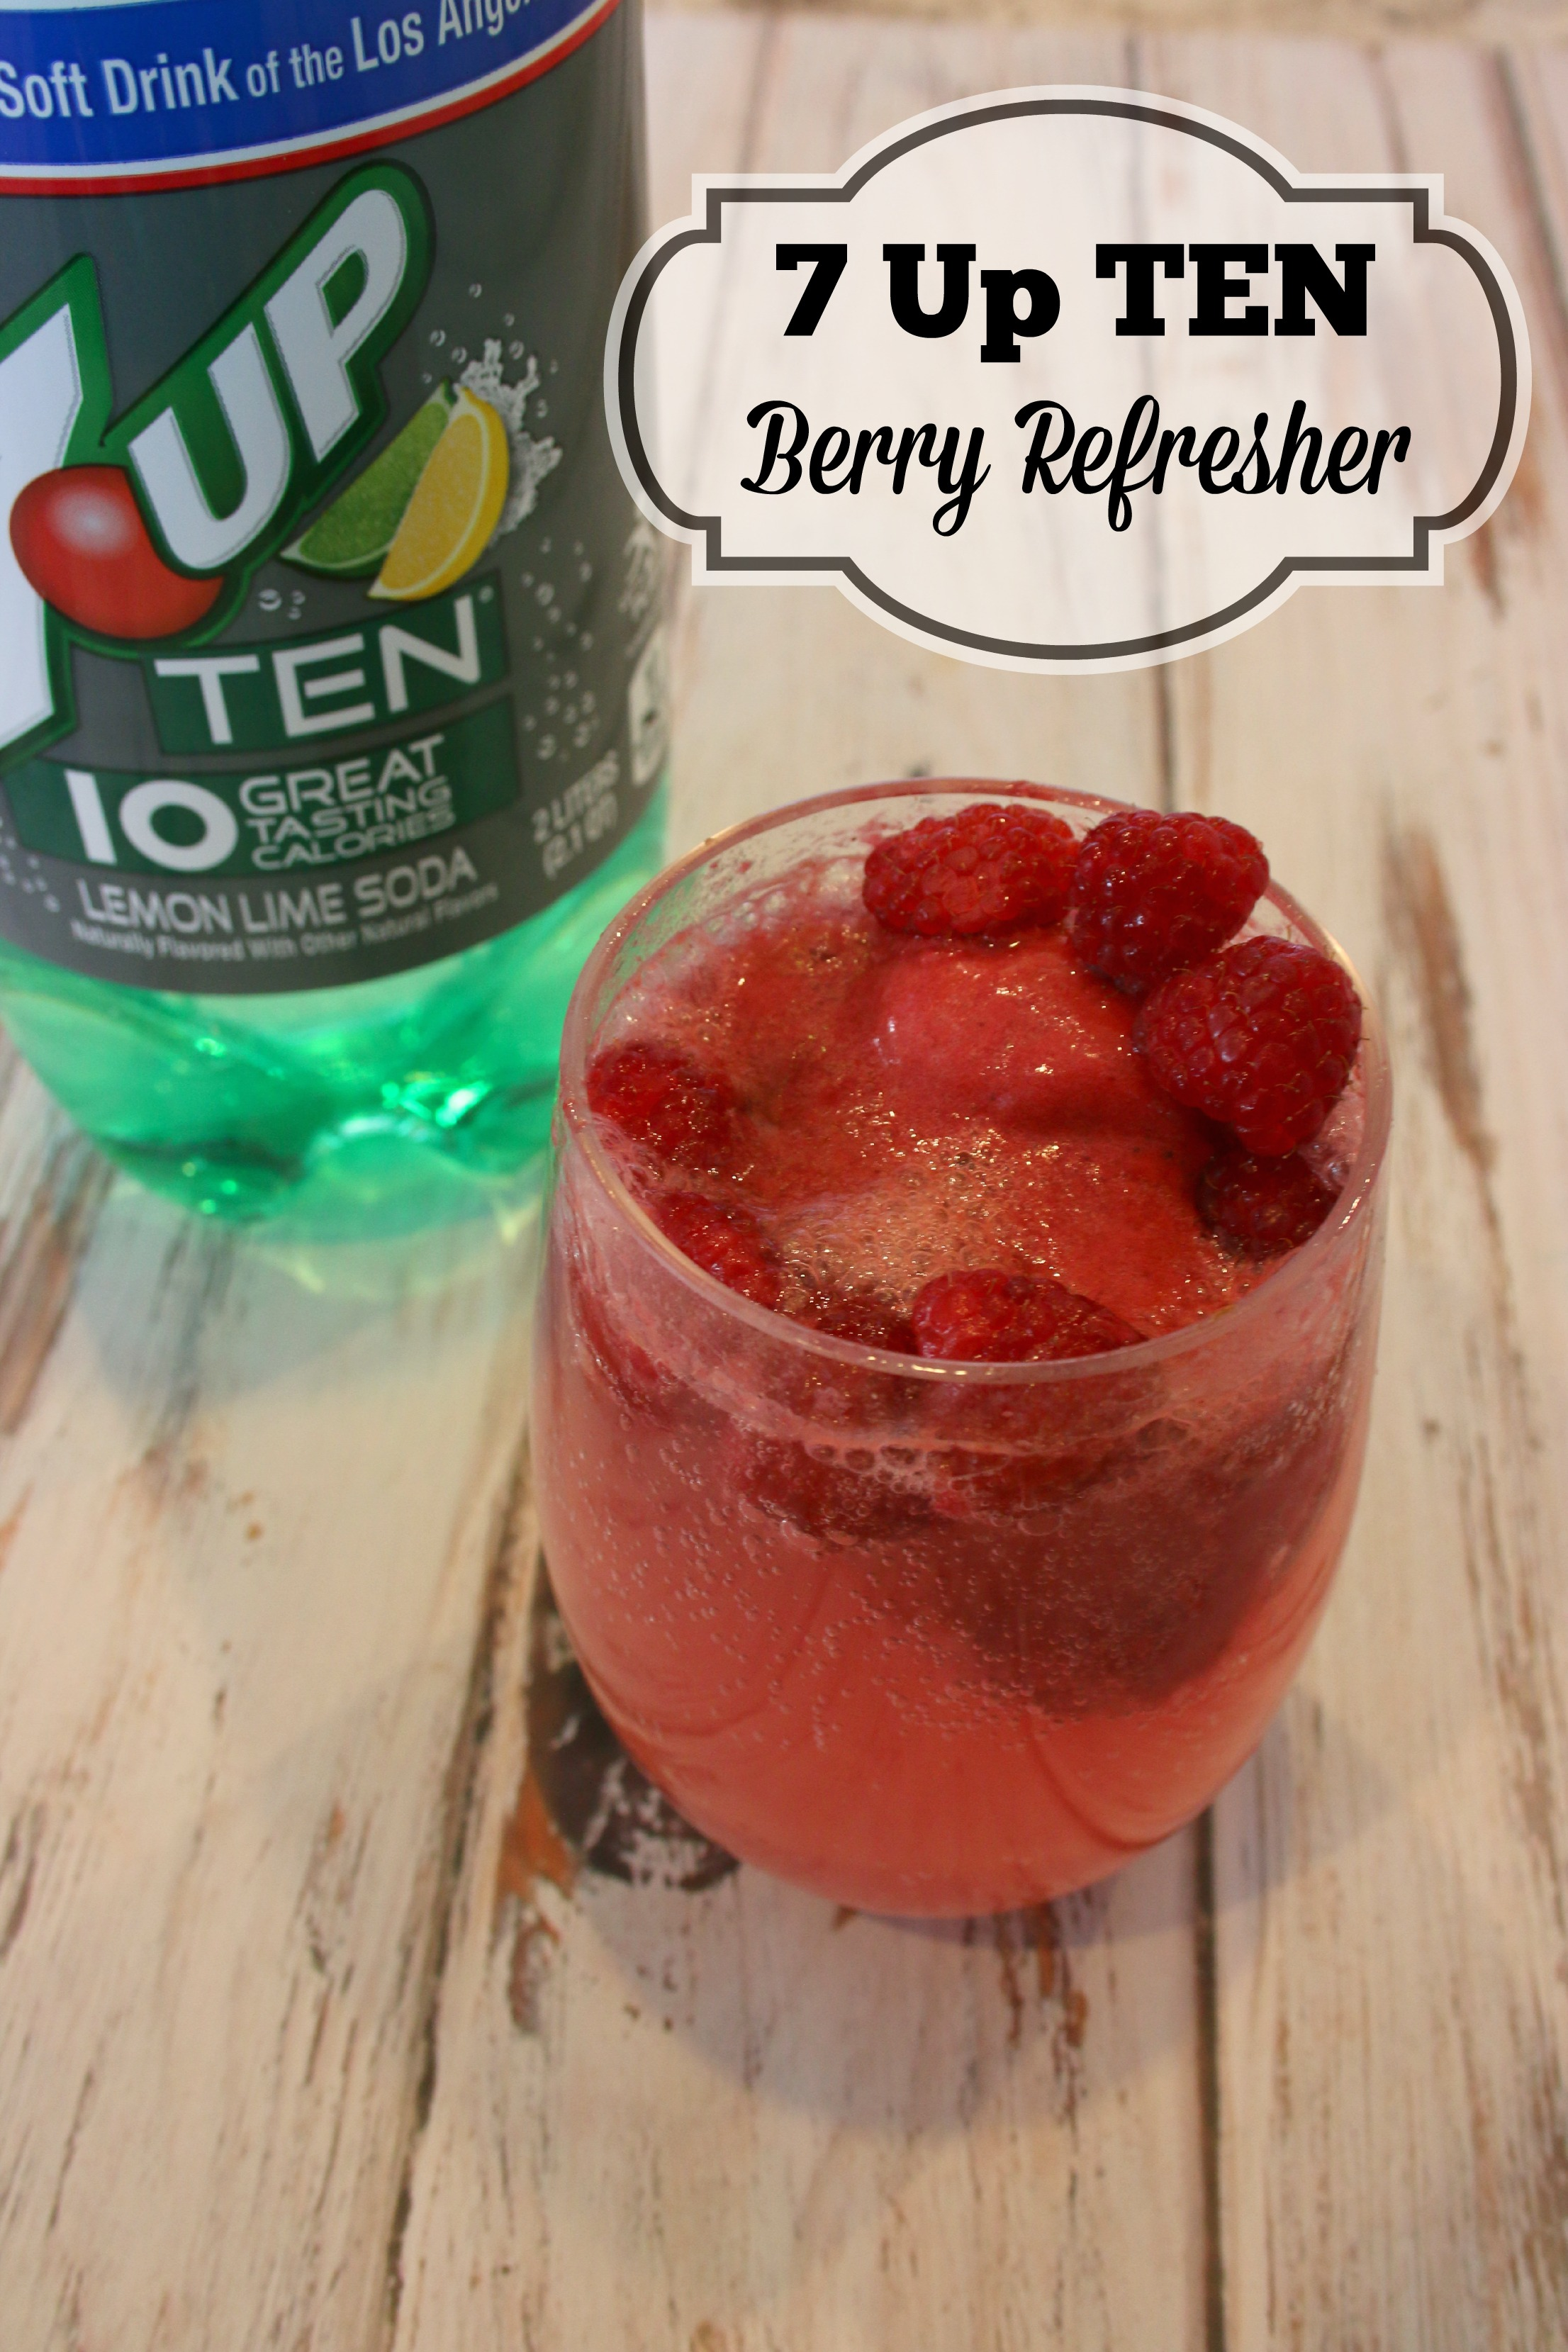 7up ten berry refresher